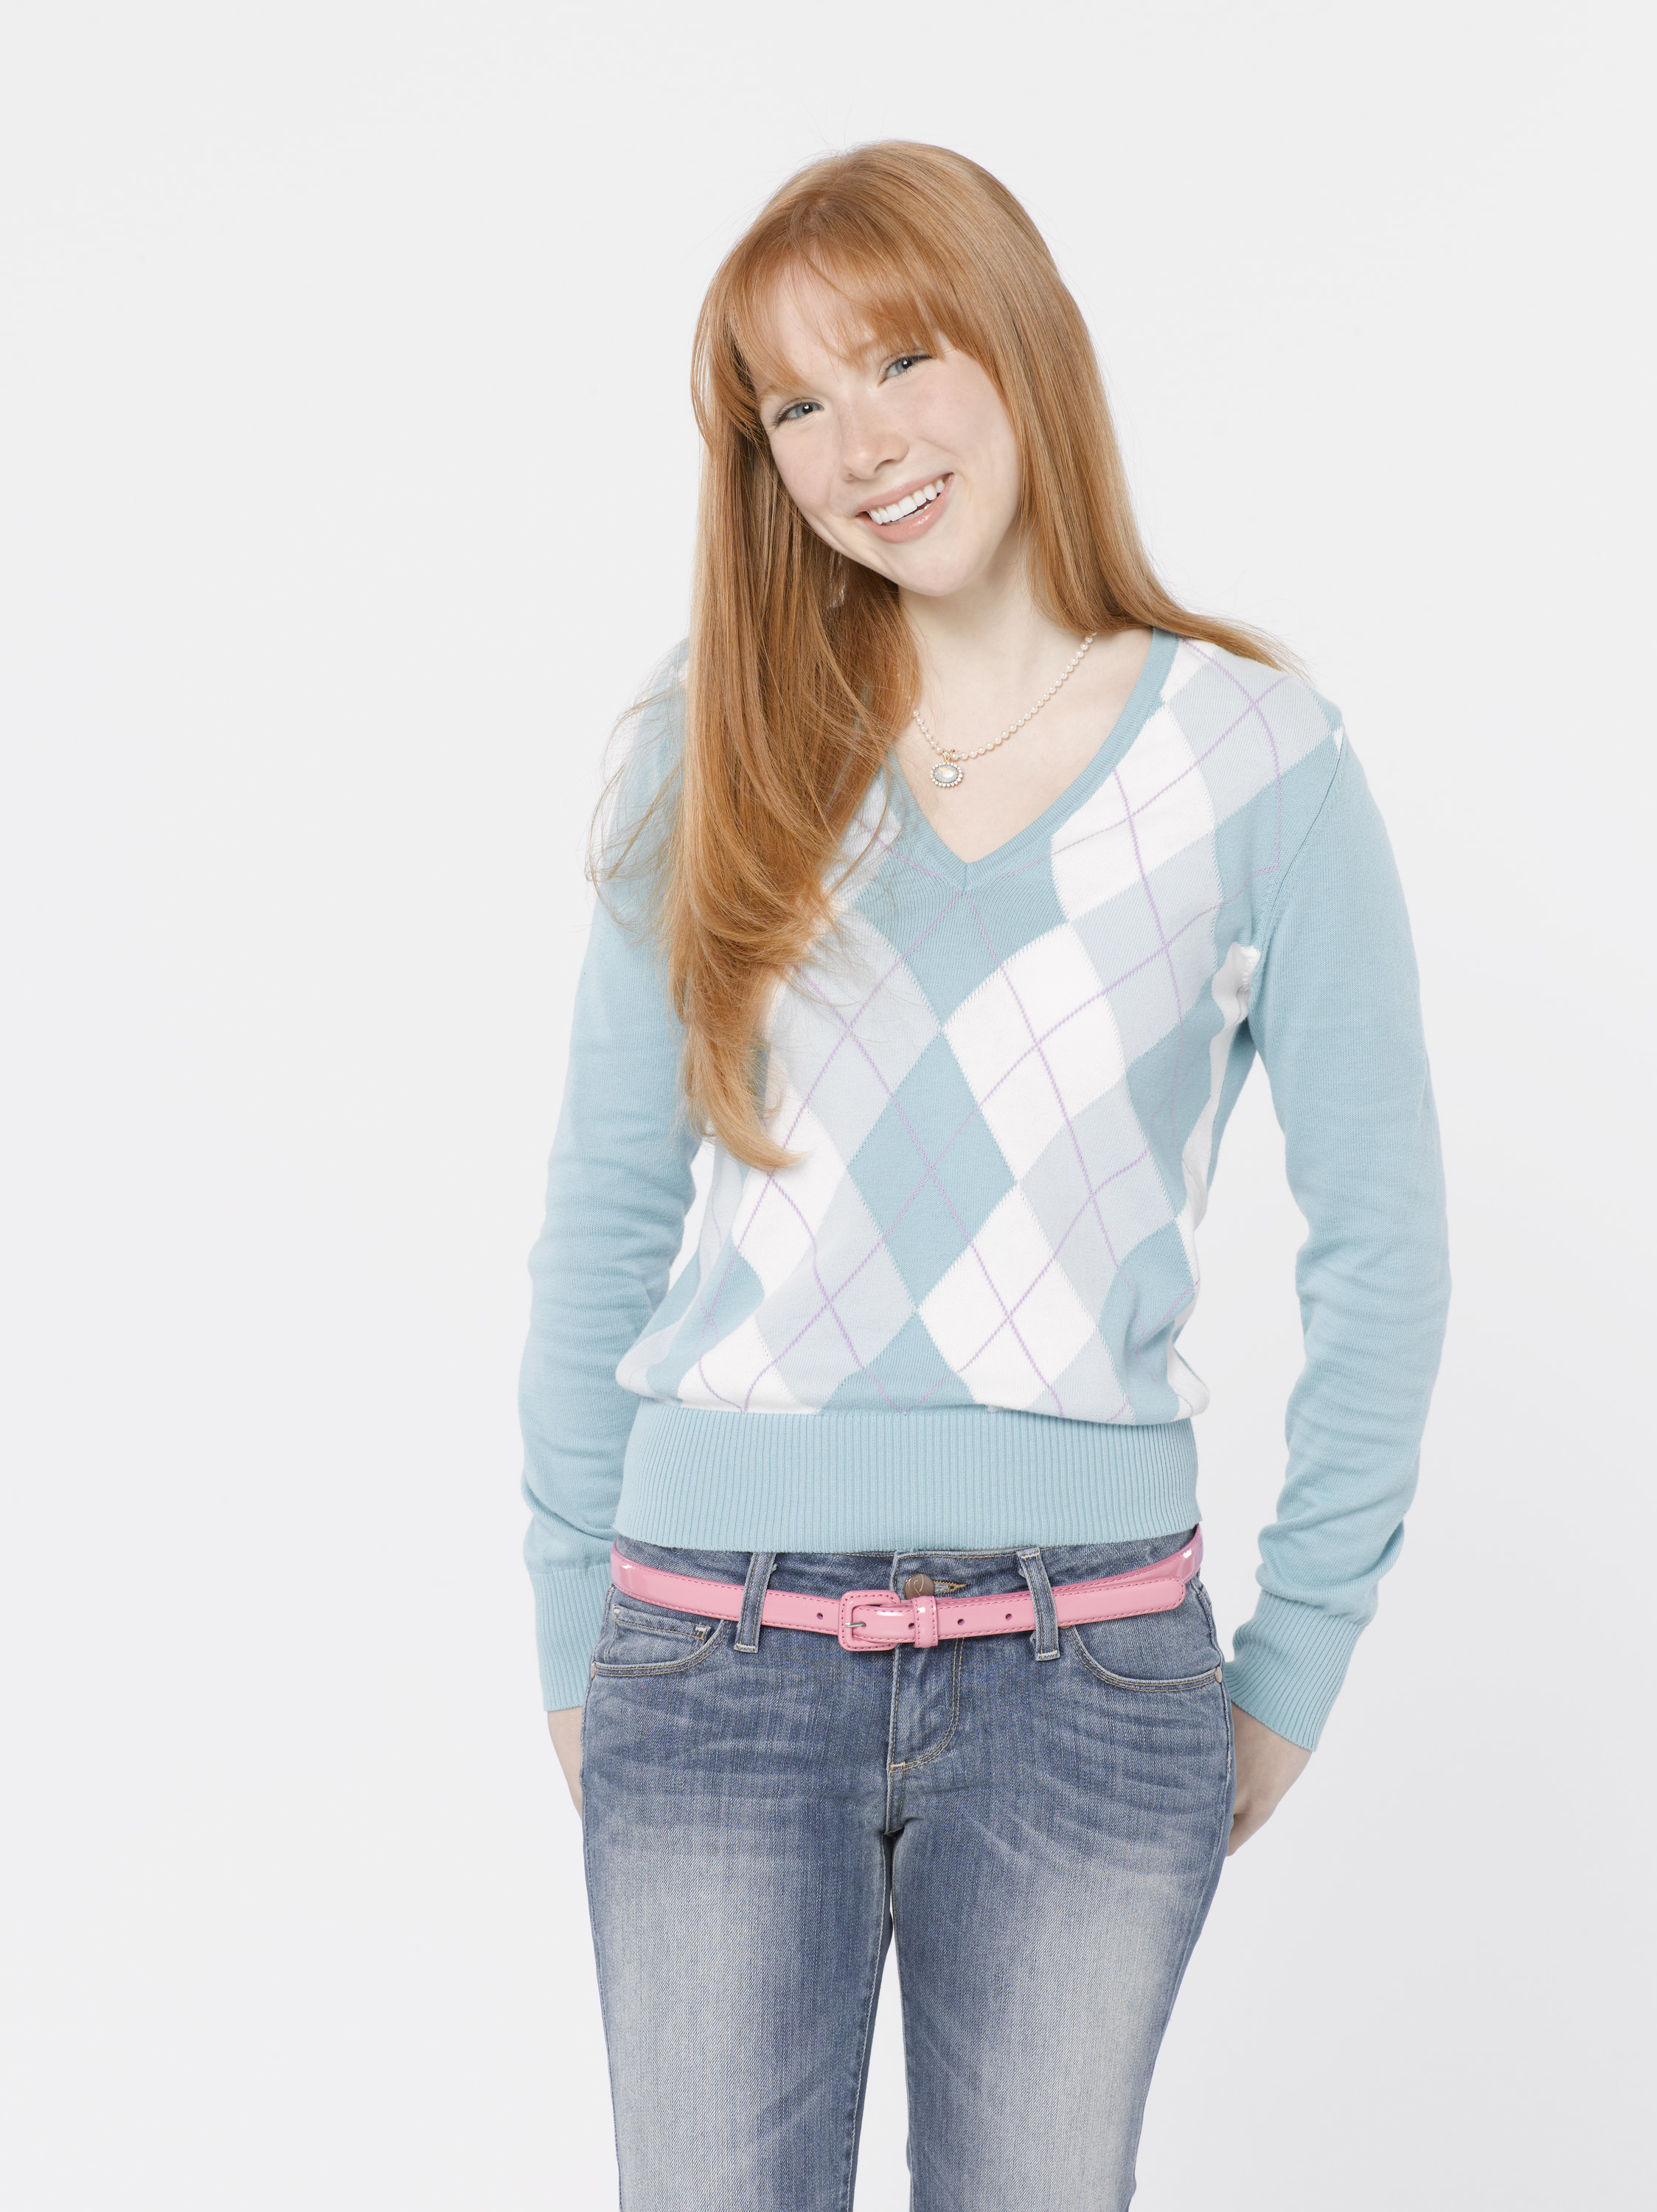 woman jeans Actress redheads HD Wallpaper